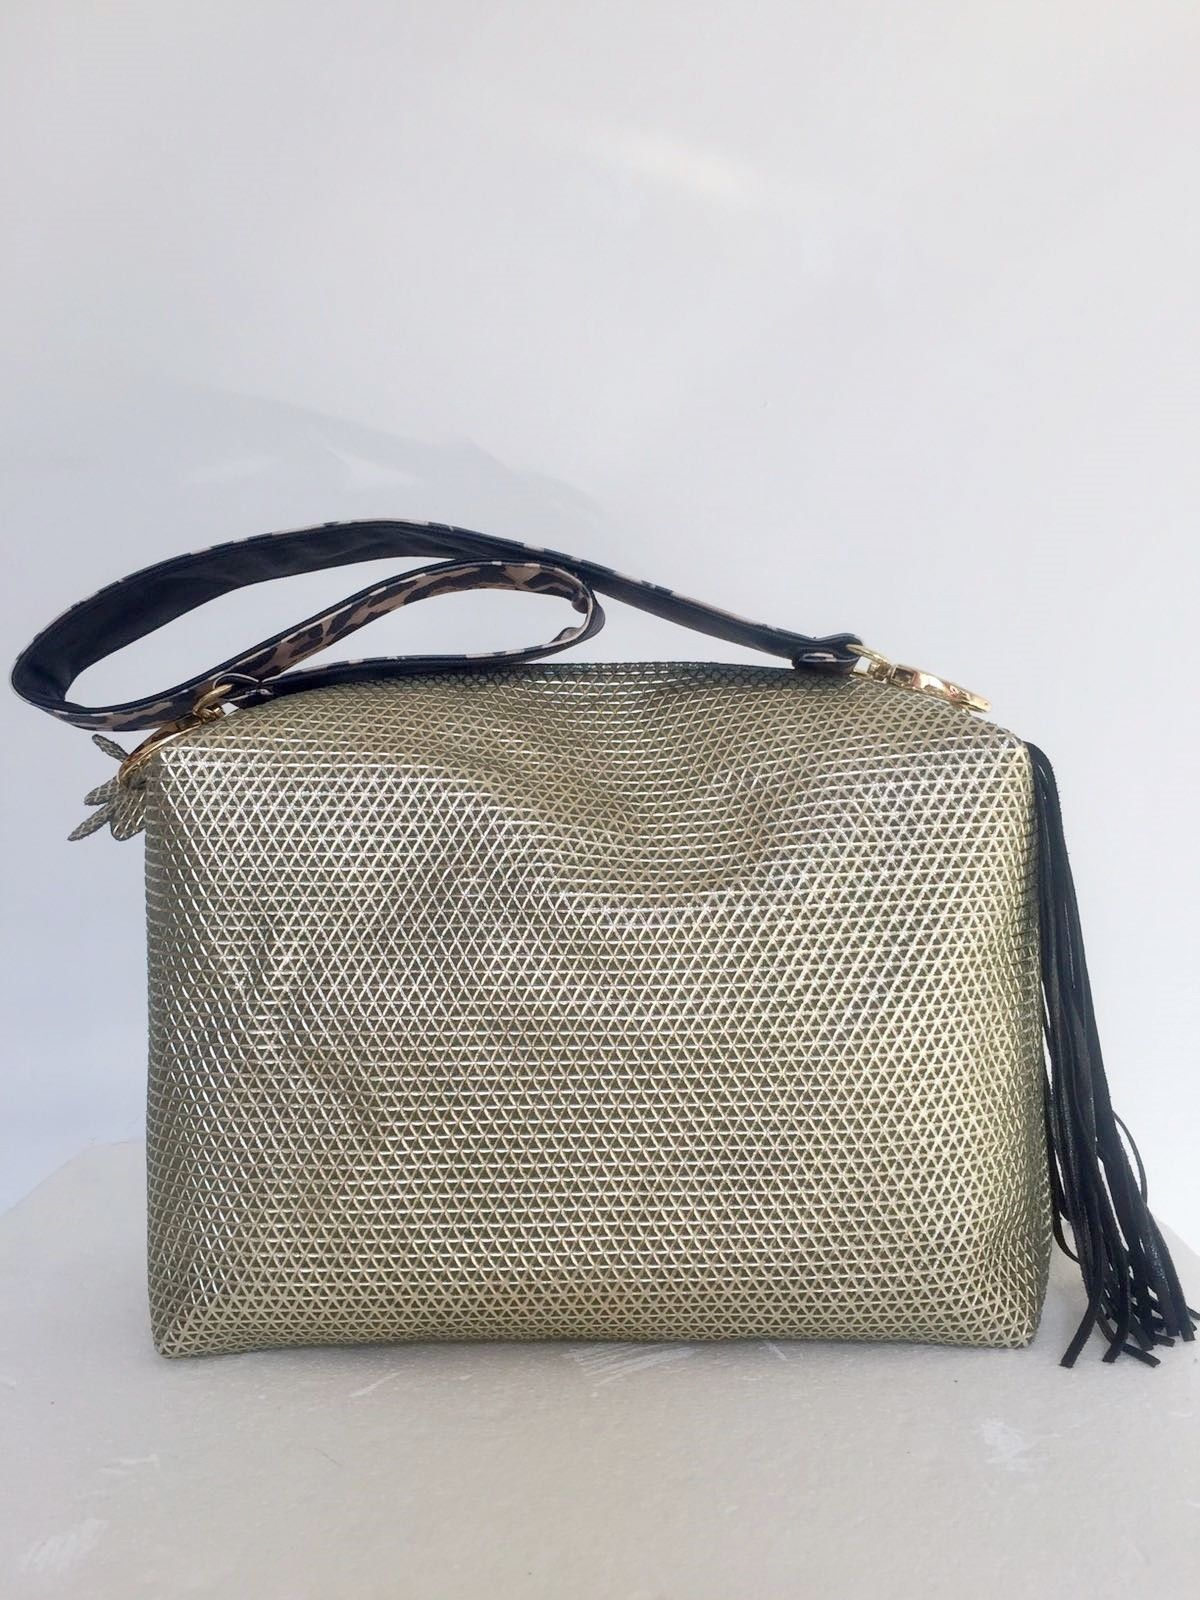 Satchel with fringe and Spotted shoulder bag Cod.1018